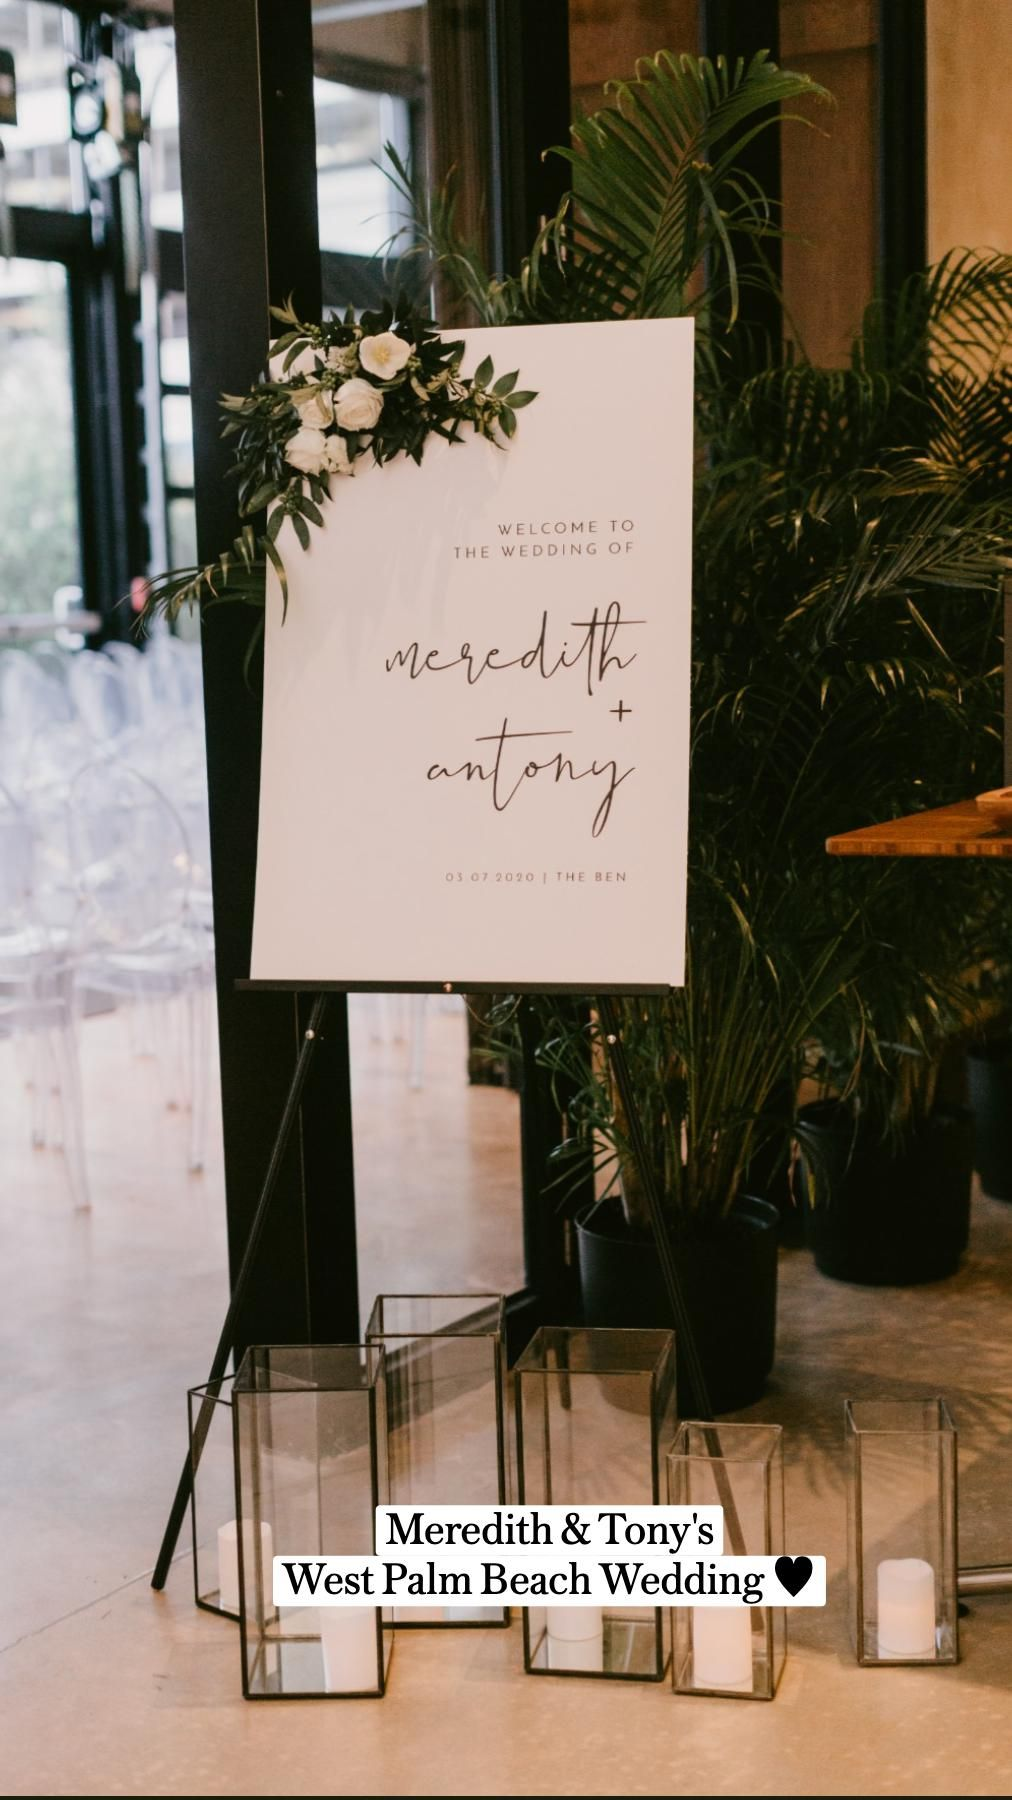 30 wedding details that may seem a bit extra, but are actually brilliant